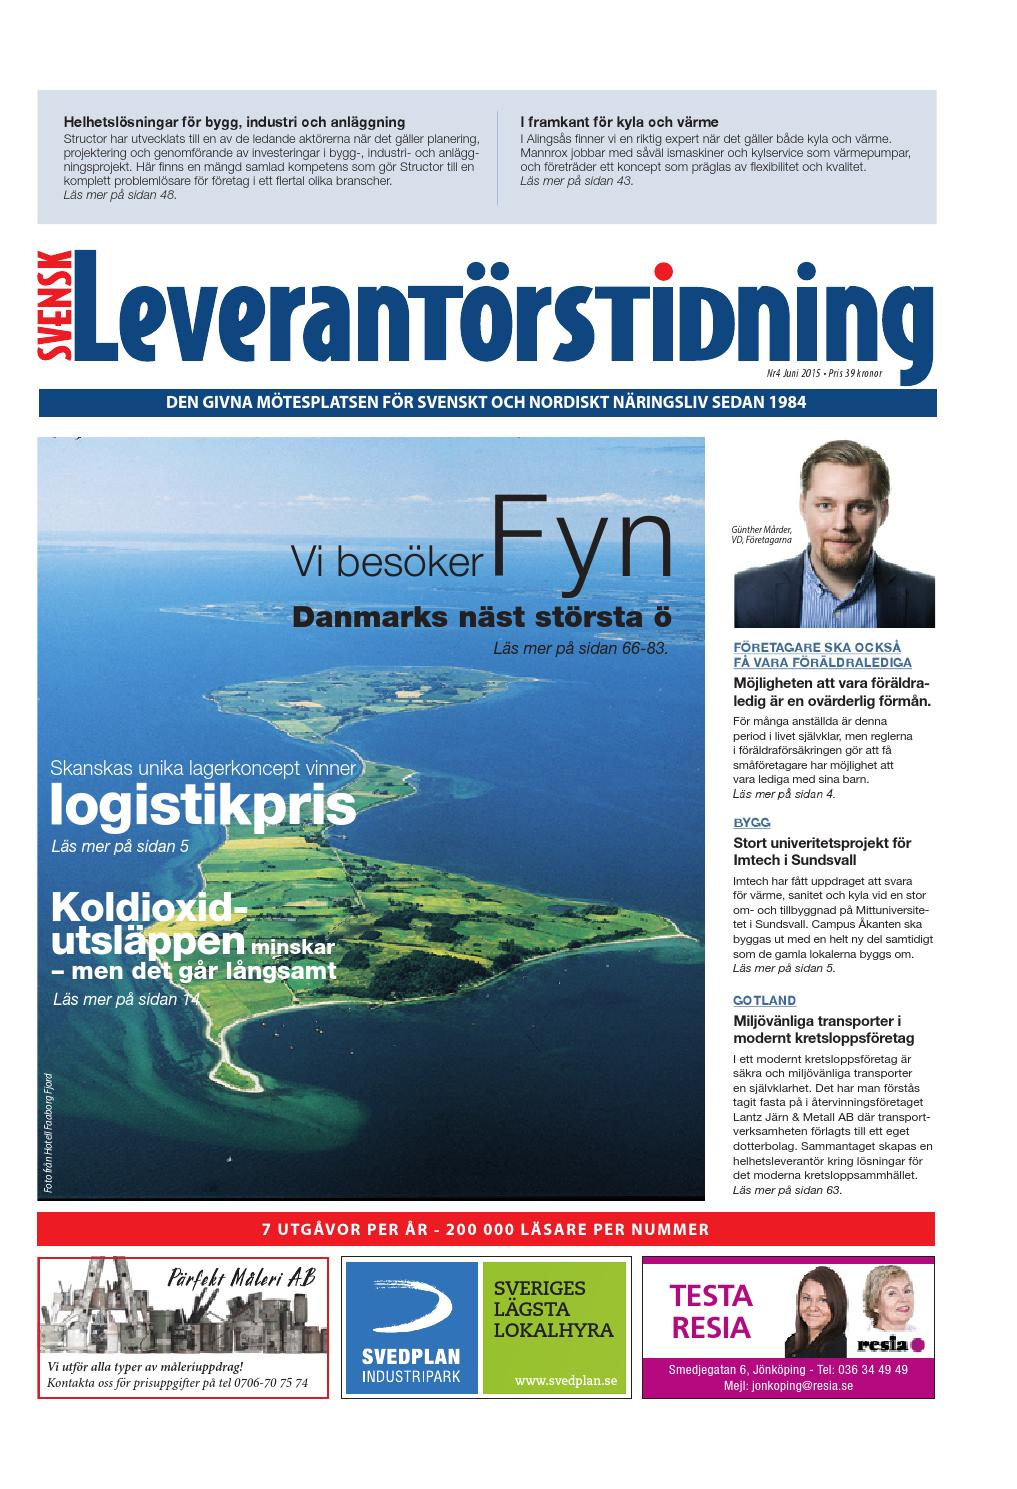 Svensk Leverantörstidning nr-4 2015 by Hexanova Media Group AB - issuu 7a9f831edc8a7